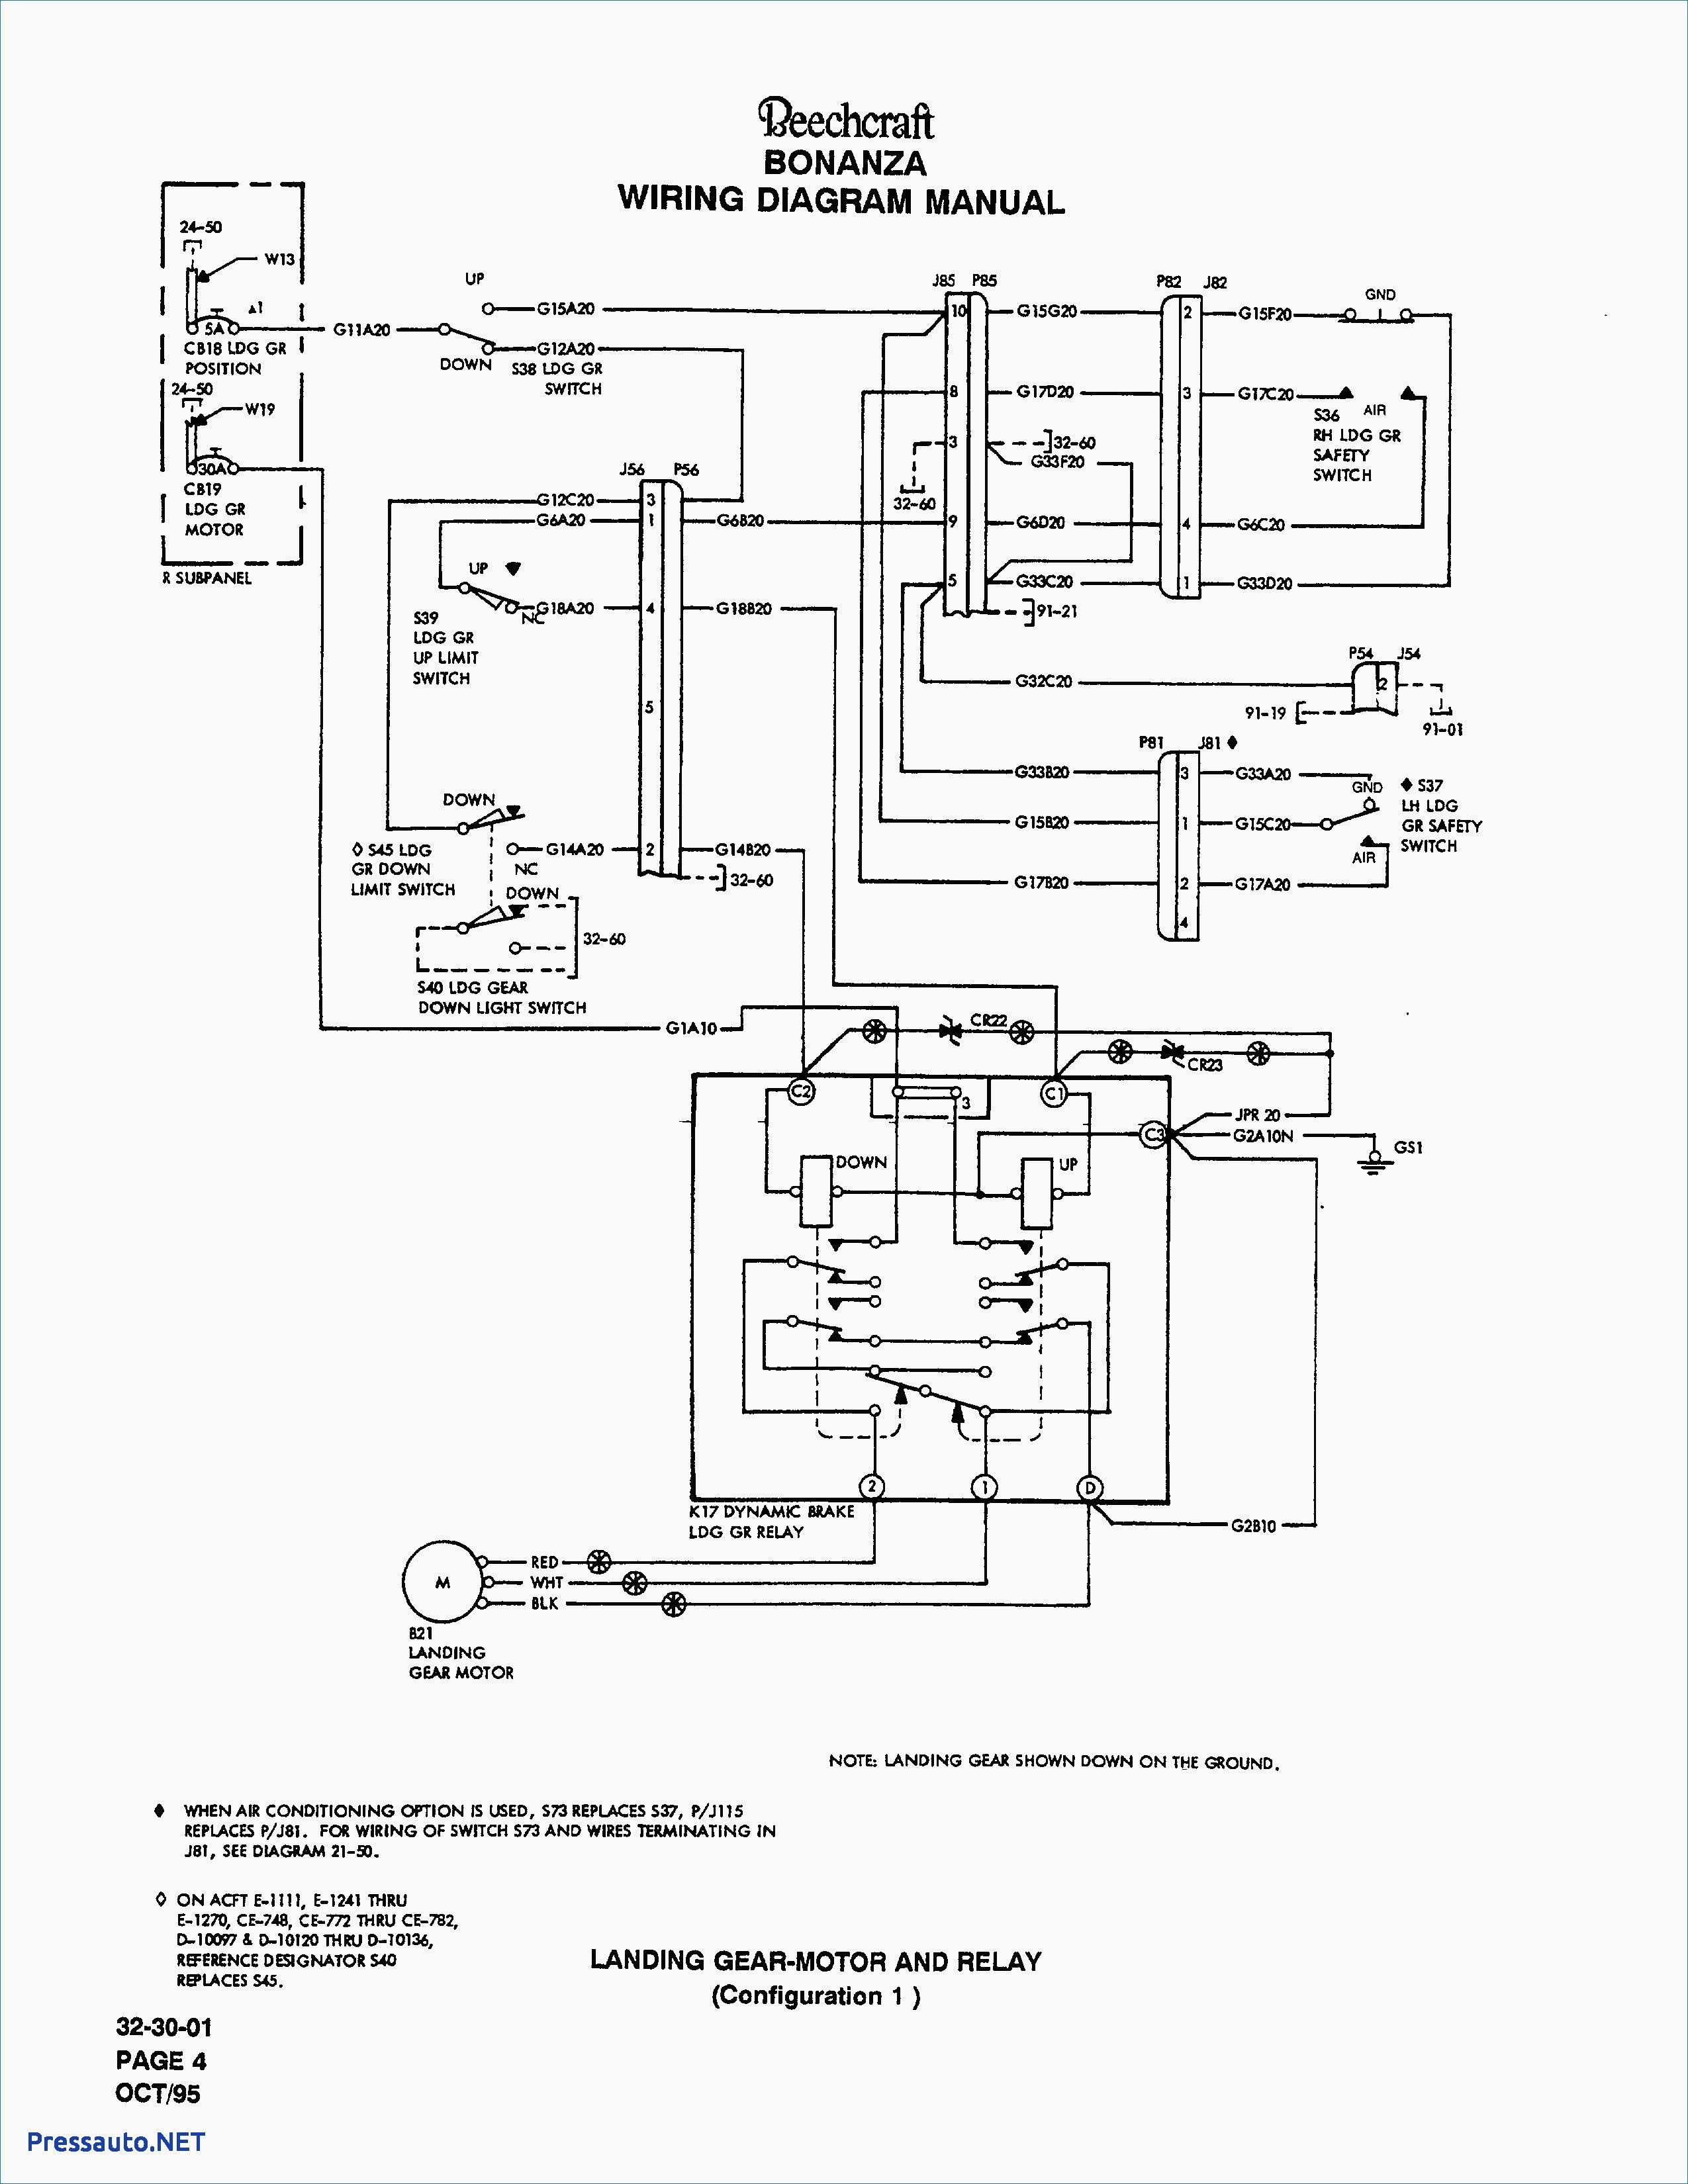 Unique Wiring Diagram For American Standard Gas Furnace Diagram